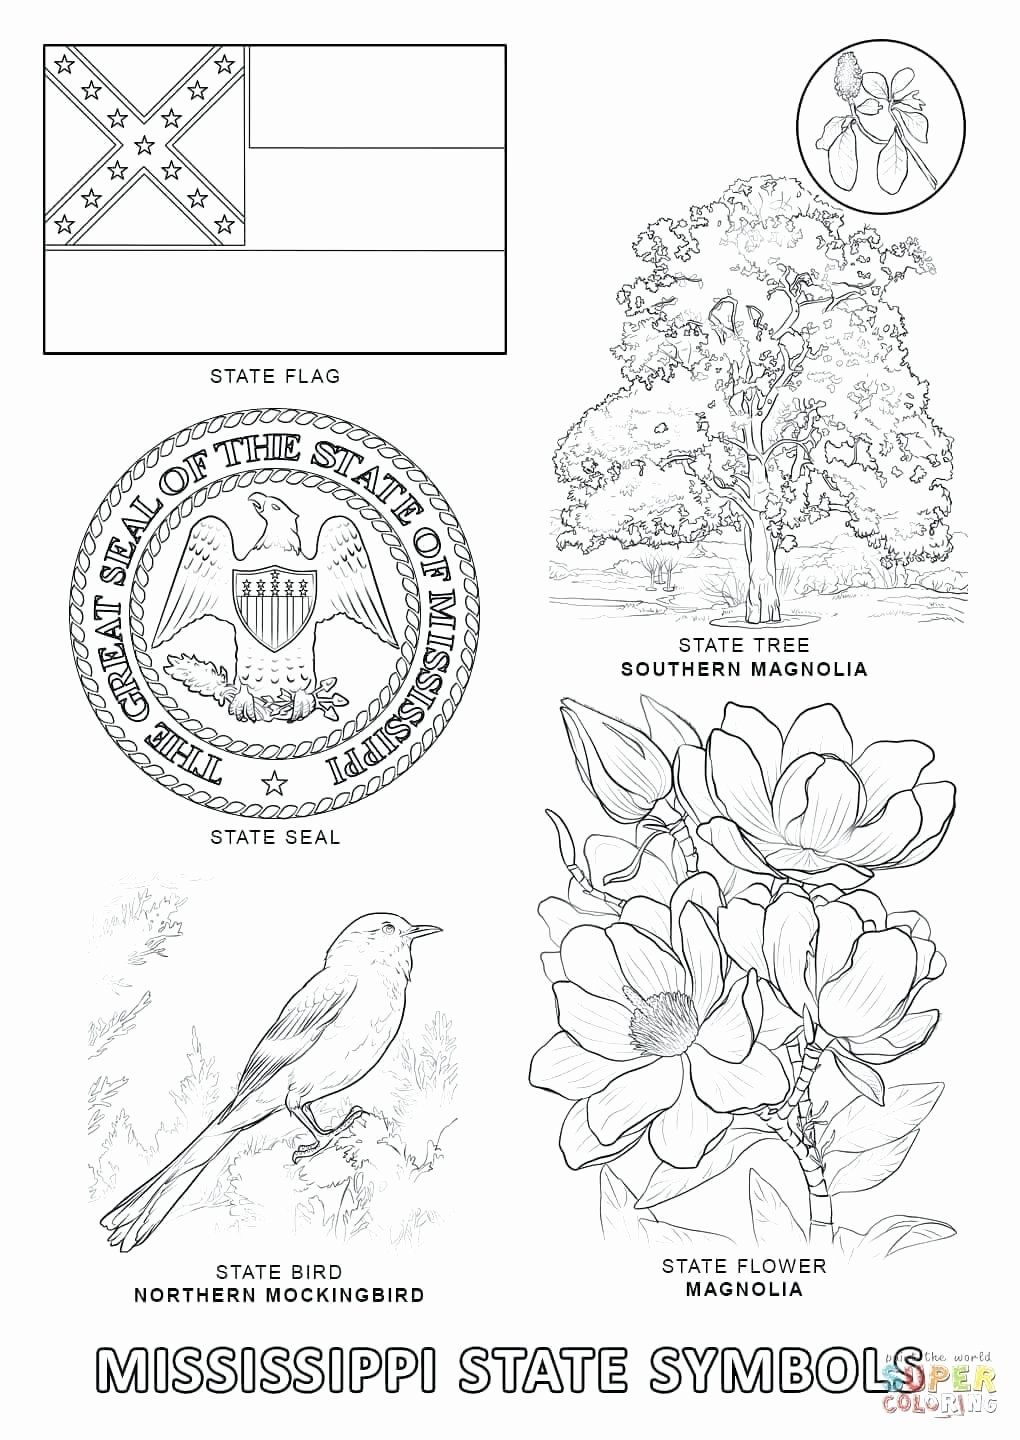 California State Bird Coloring Page Lovely Arizona State Flag Coloring Page Mayhemcolor In 2020 State Symbols Georgia Symbols Flag Coloring Pages